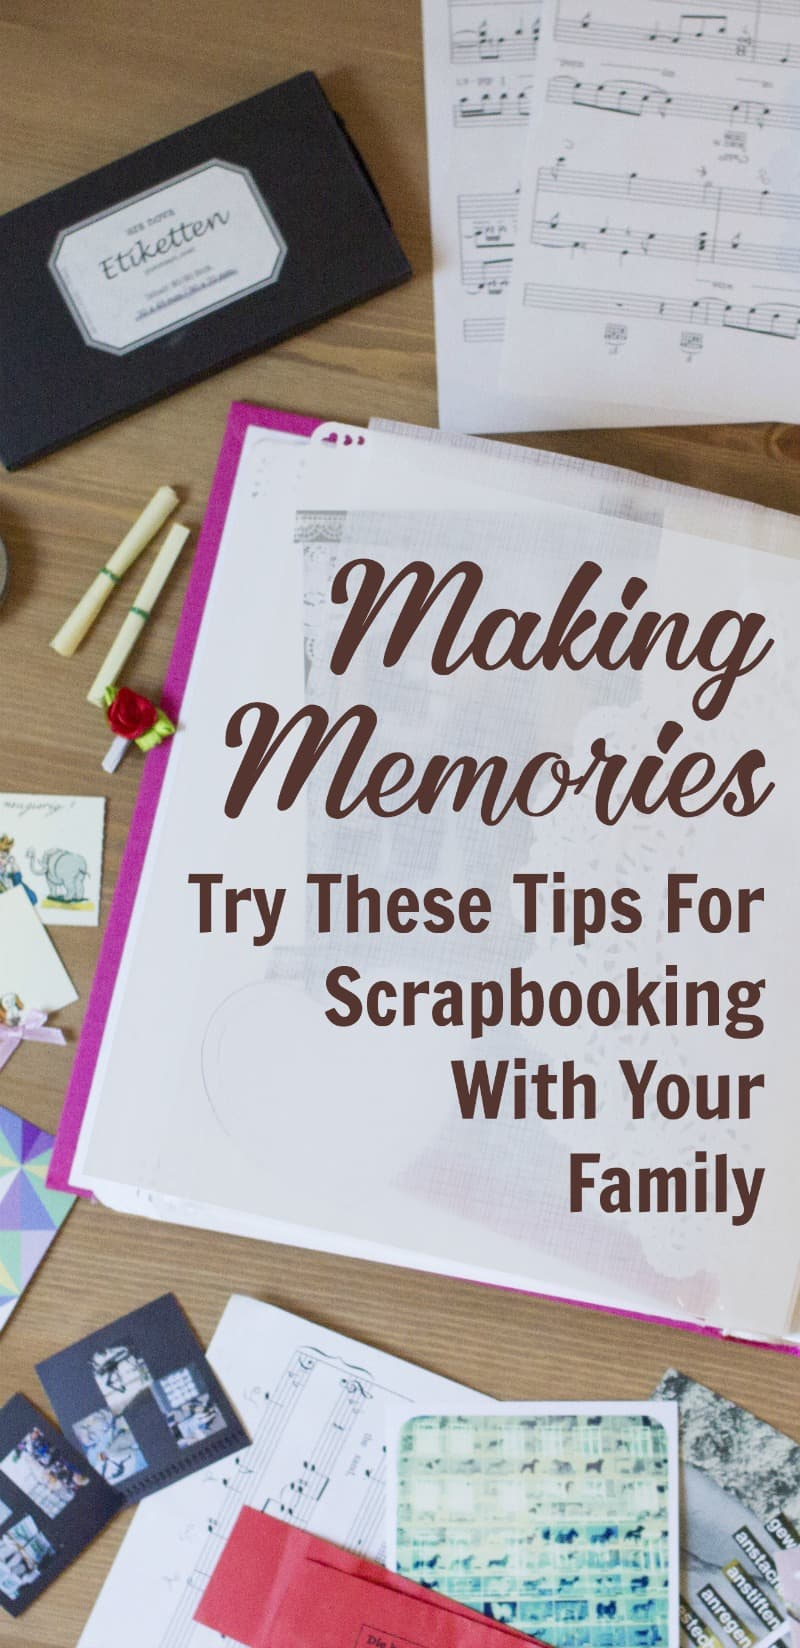 Making Memories - Scrapbooking With Your Family